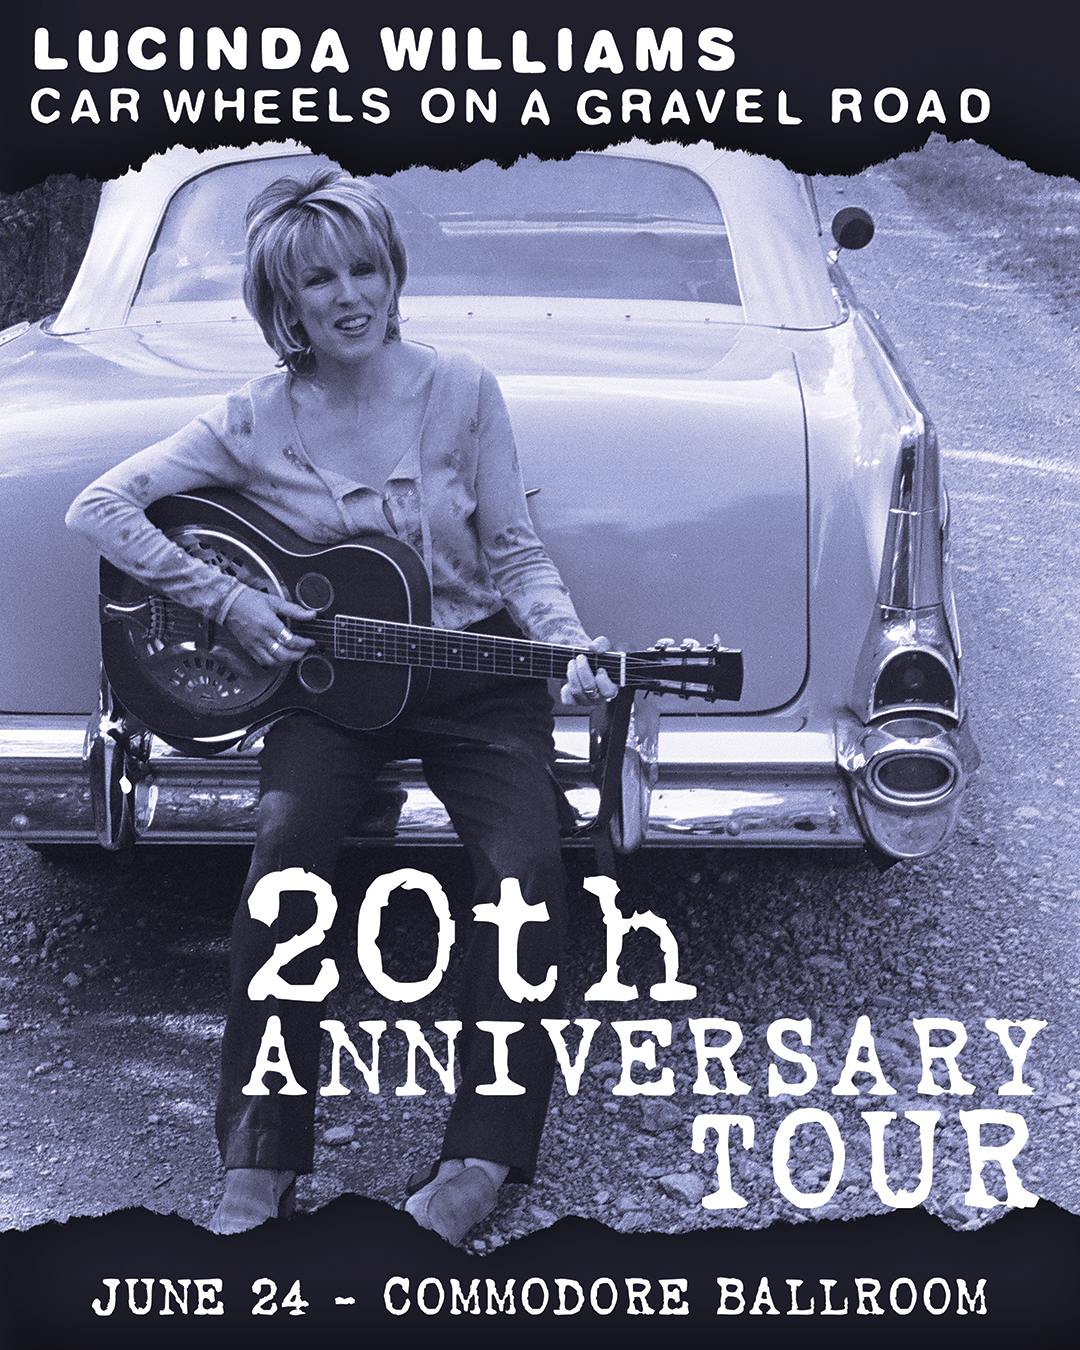 20th anniversary Tour for Car Wheels on a Gravel road by Lucinda Williams